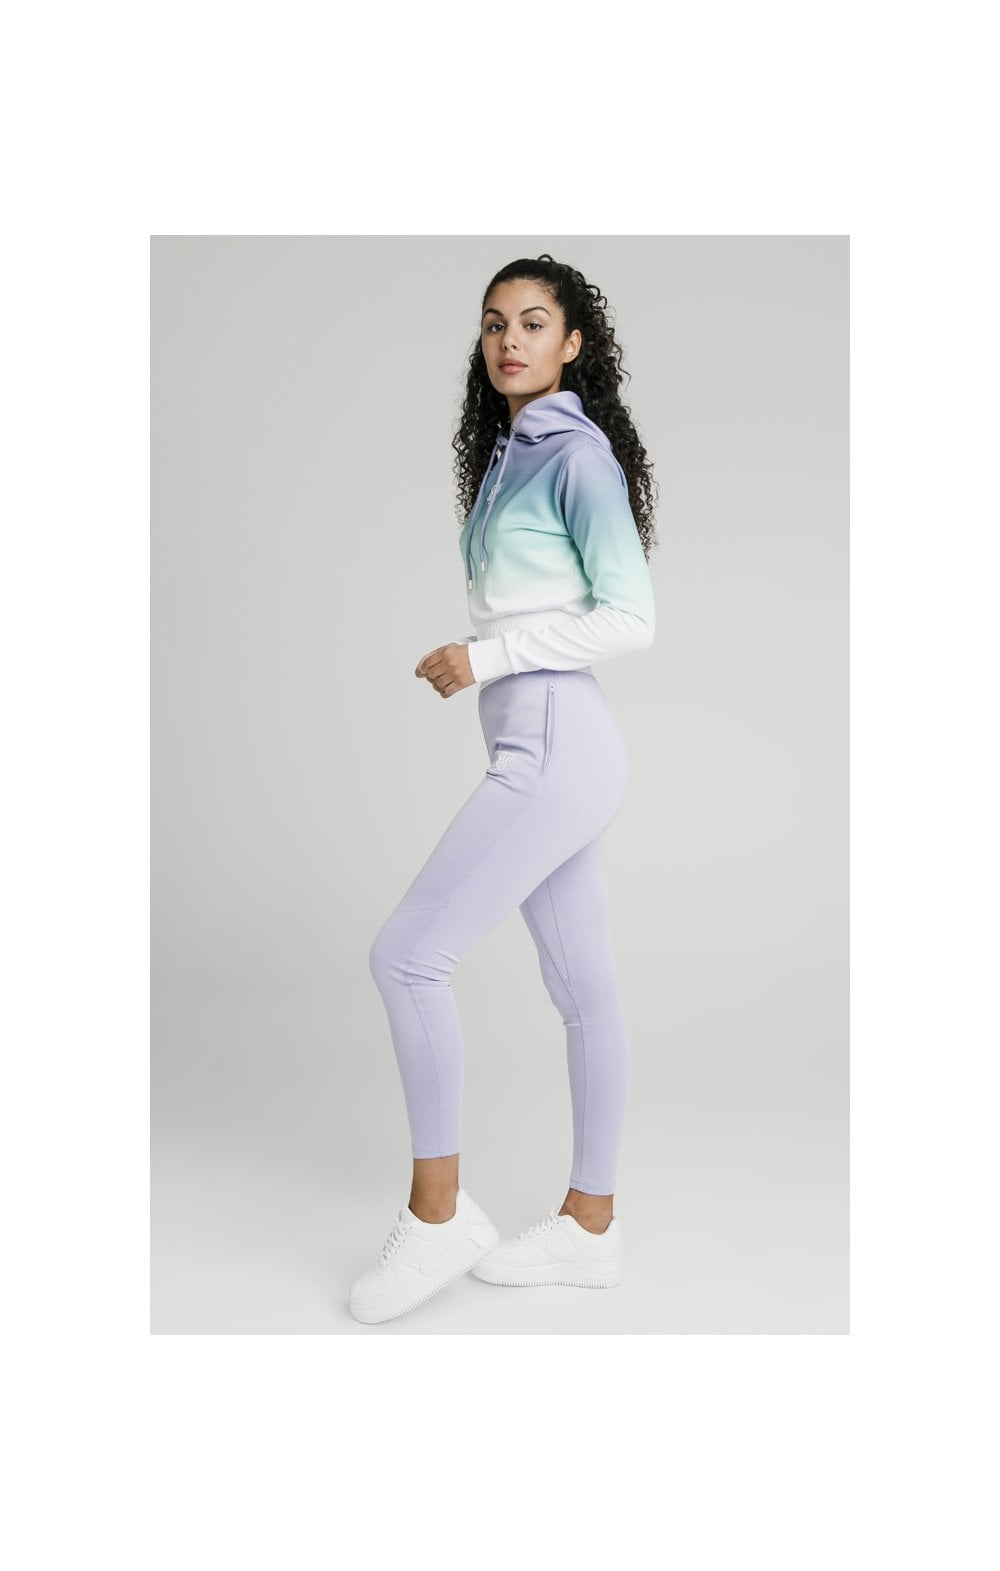 SikSilk Lilac Haze Track Top - Lilac, Turquoise & White (4)